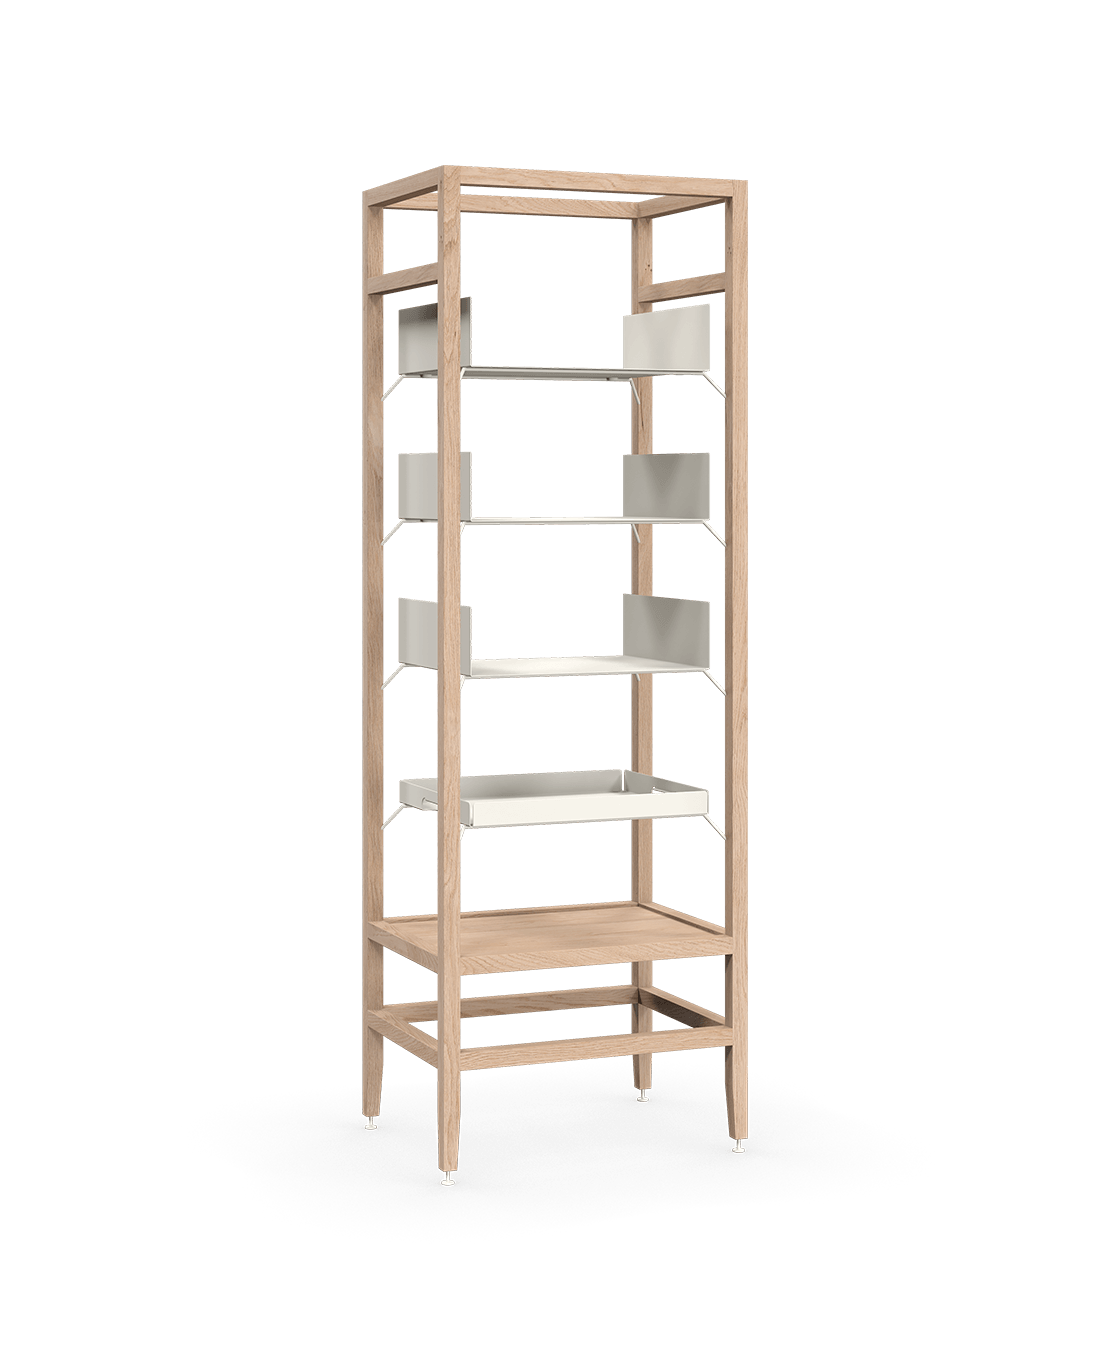 coquo volitare white oak solid wood modular 3 shelves 1 removable tray storage tall bookcase shelving unit 24 inch C2-S-2418-0003-NA